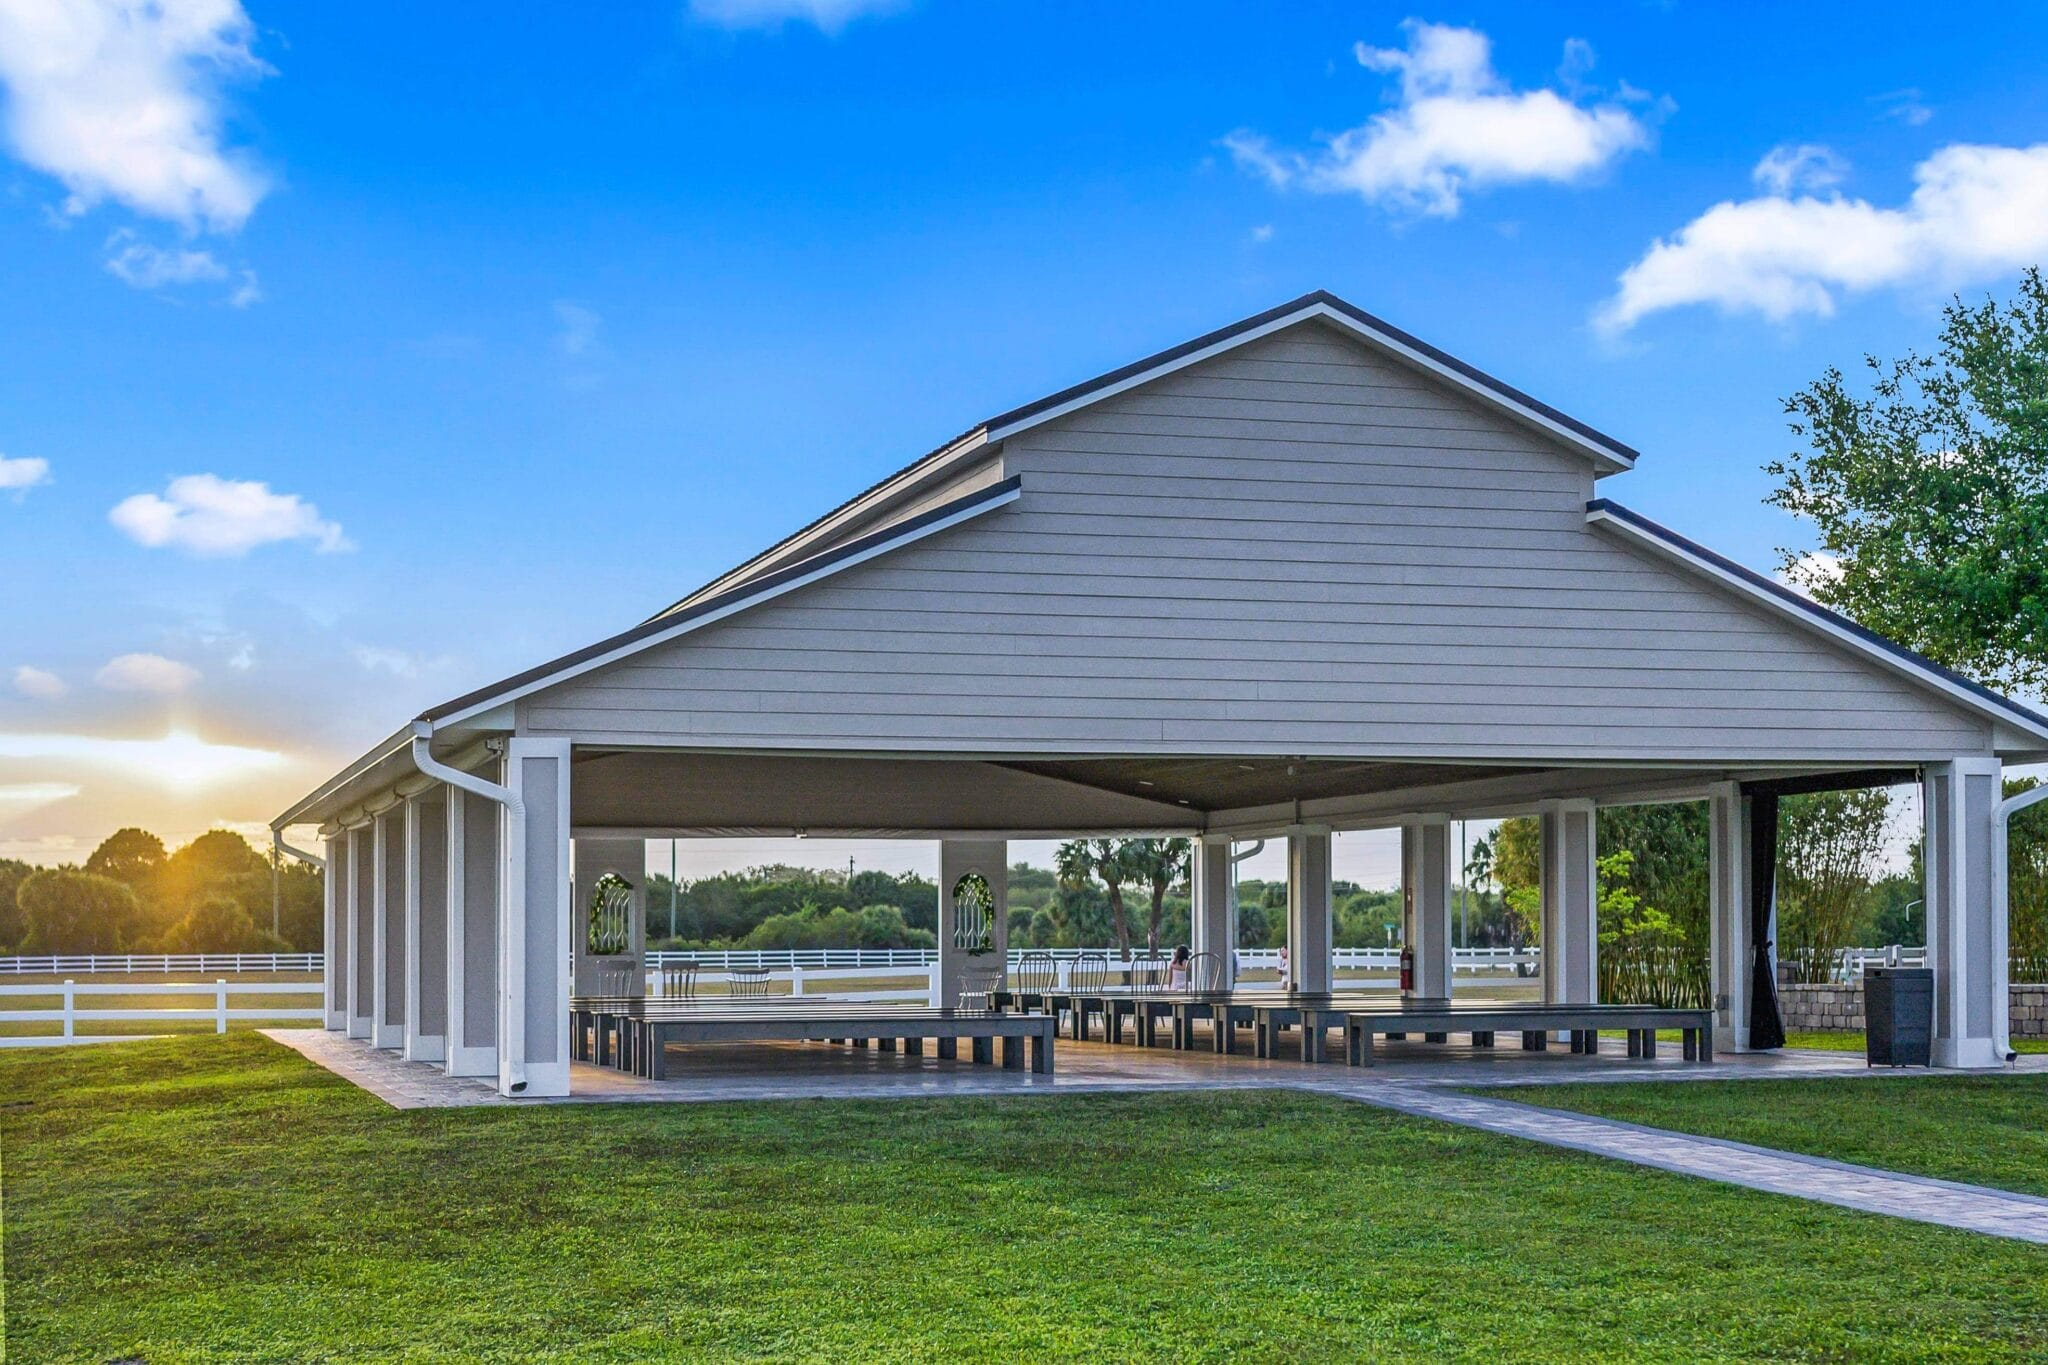 Dragonfly Farms outdoor ceremony pavilion